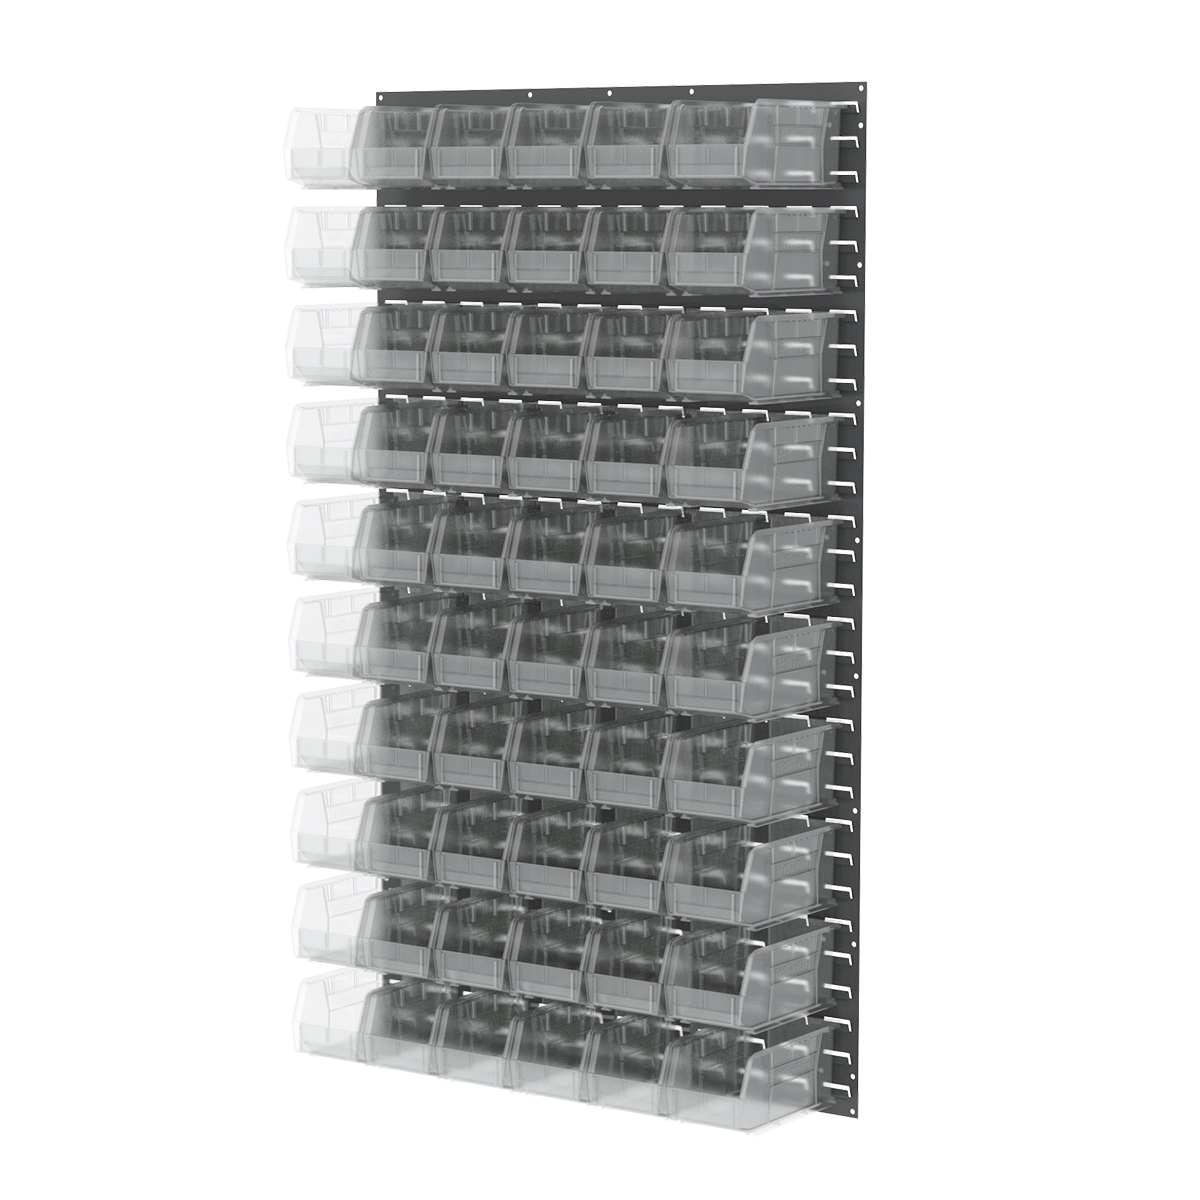 Item DISCONTINUED by Manufacturer.  Louvered Wall Panel, 36 x 61, w/ 60 AkroBins 30230, Gray/Clear (30161230SC).  This item sold in carton quantities of 1.